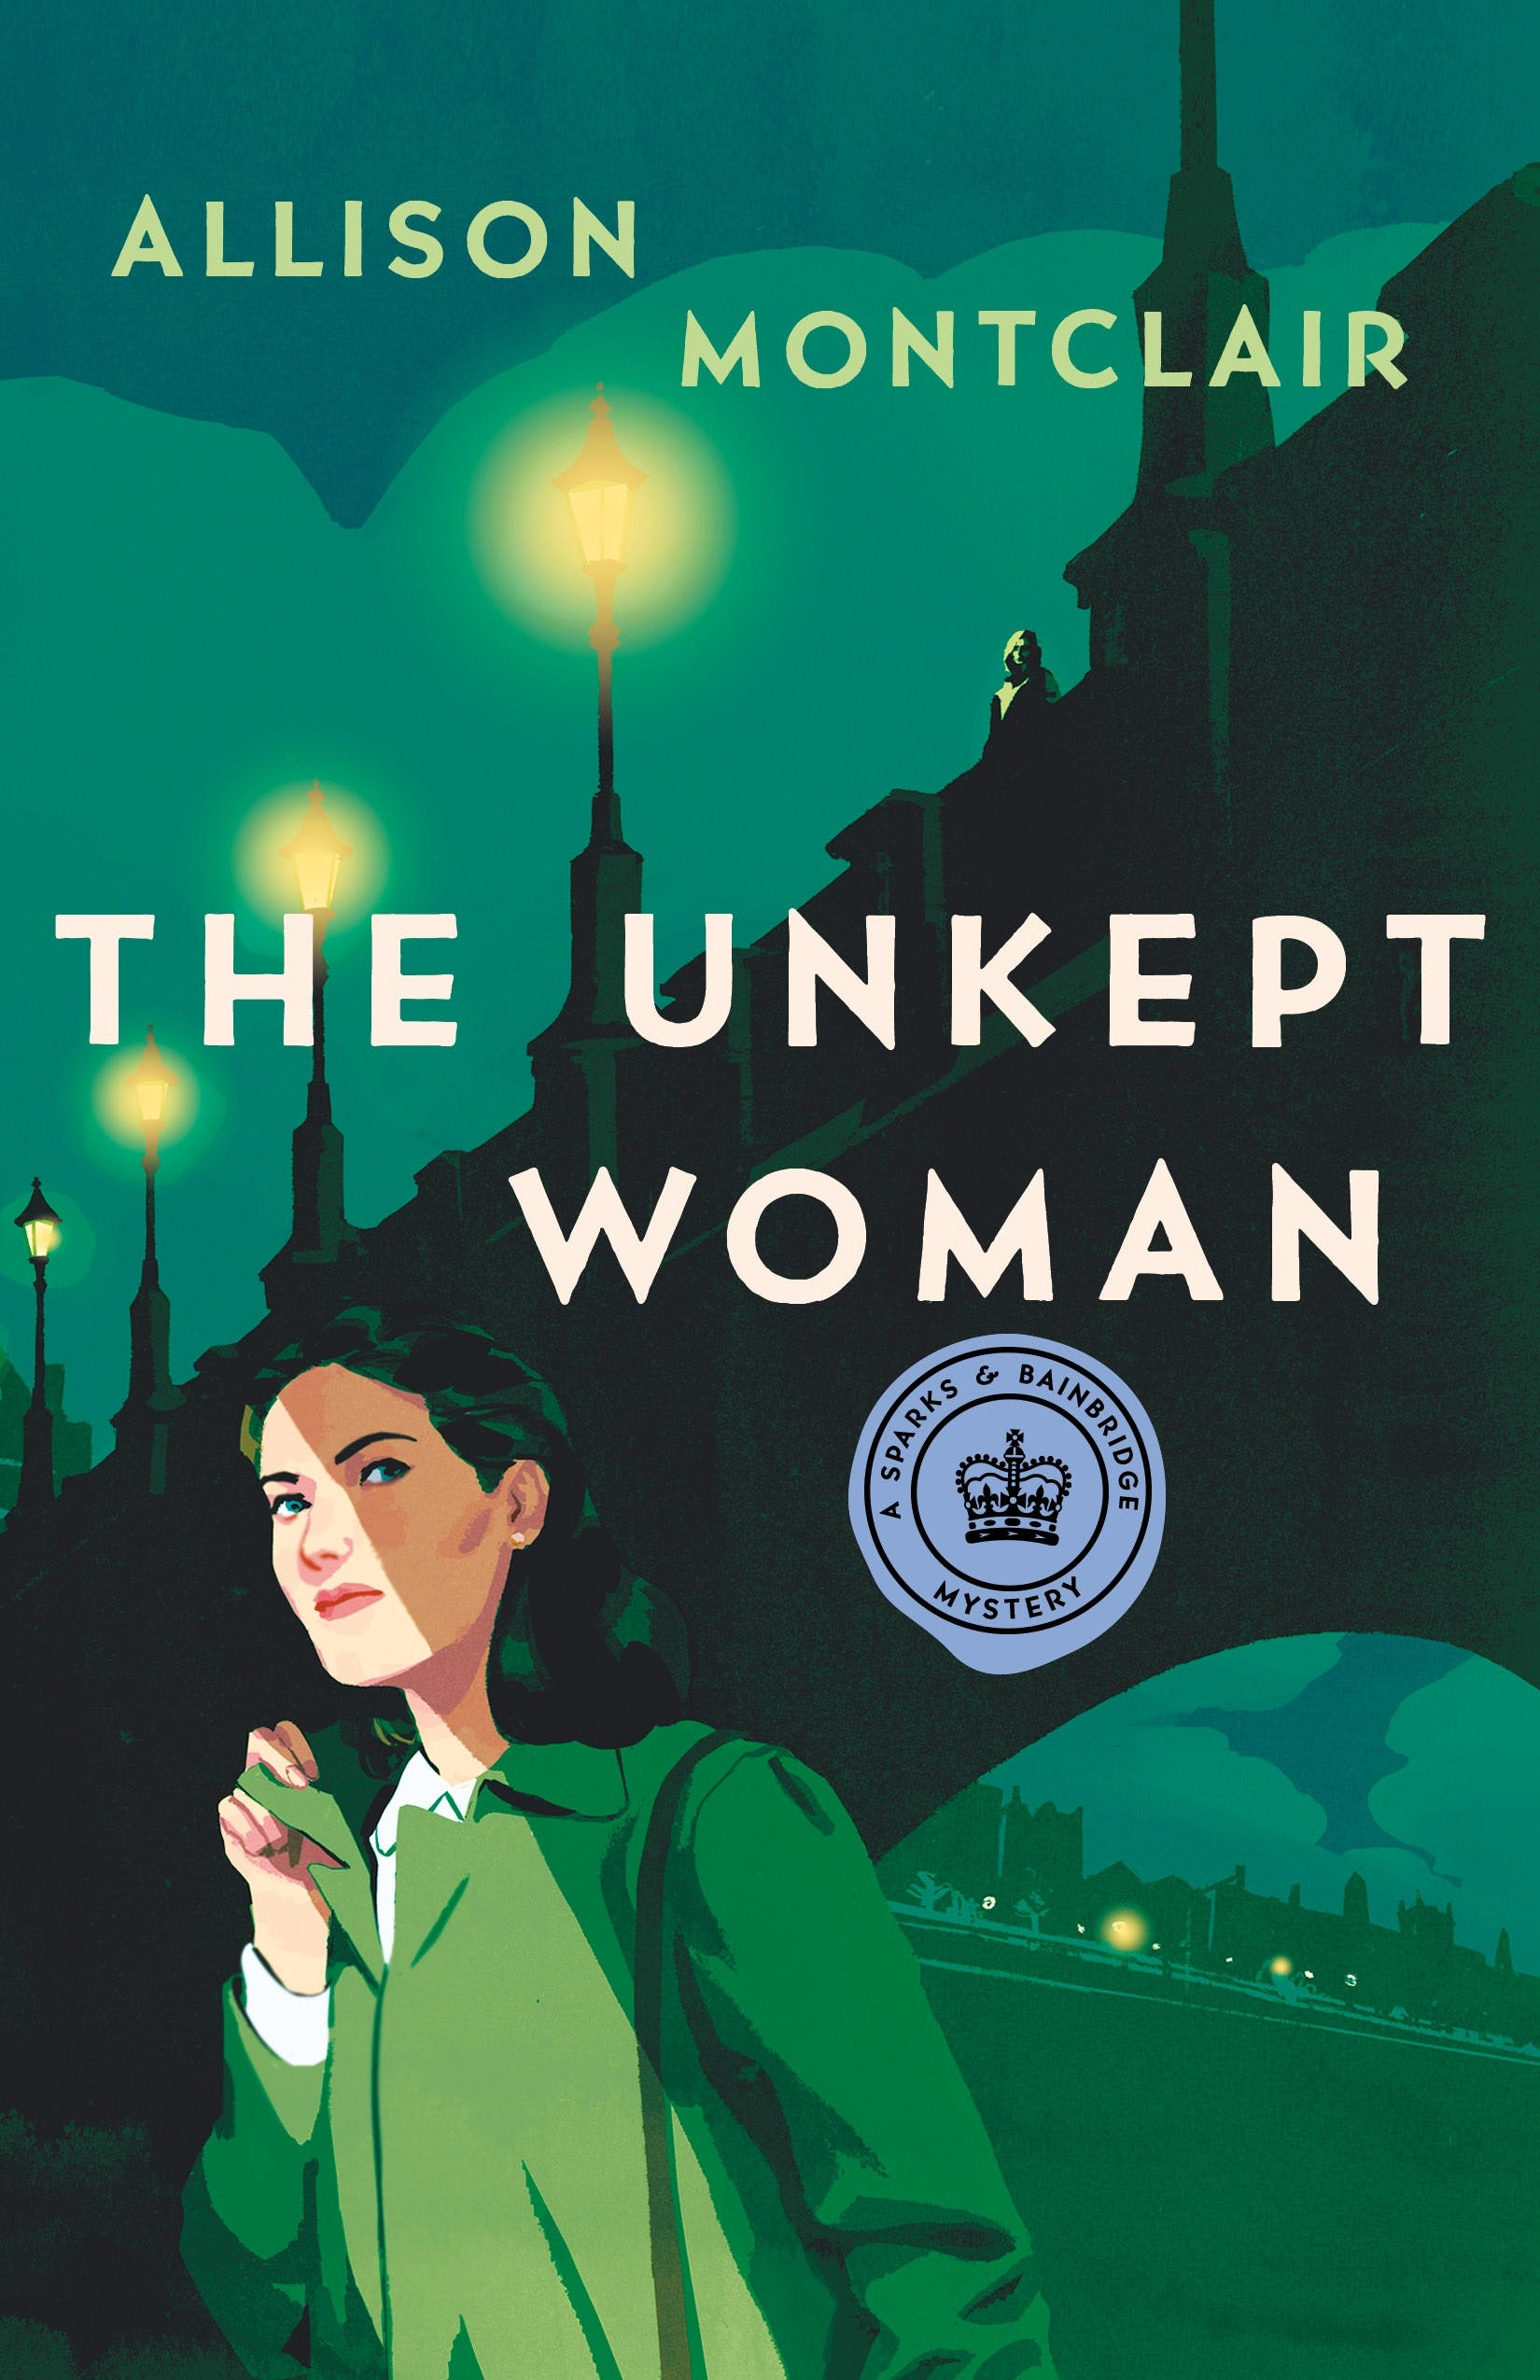 Image of The Unkept Woman